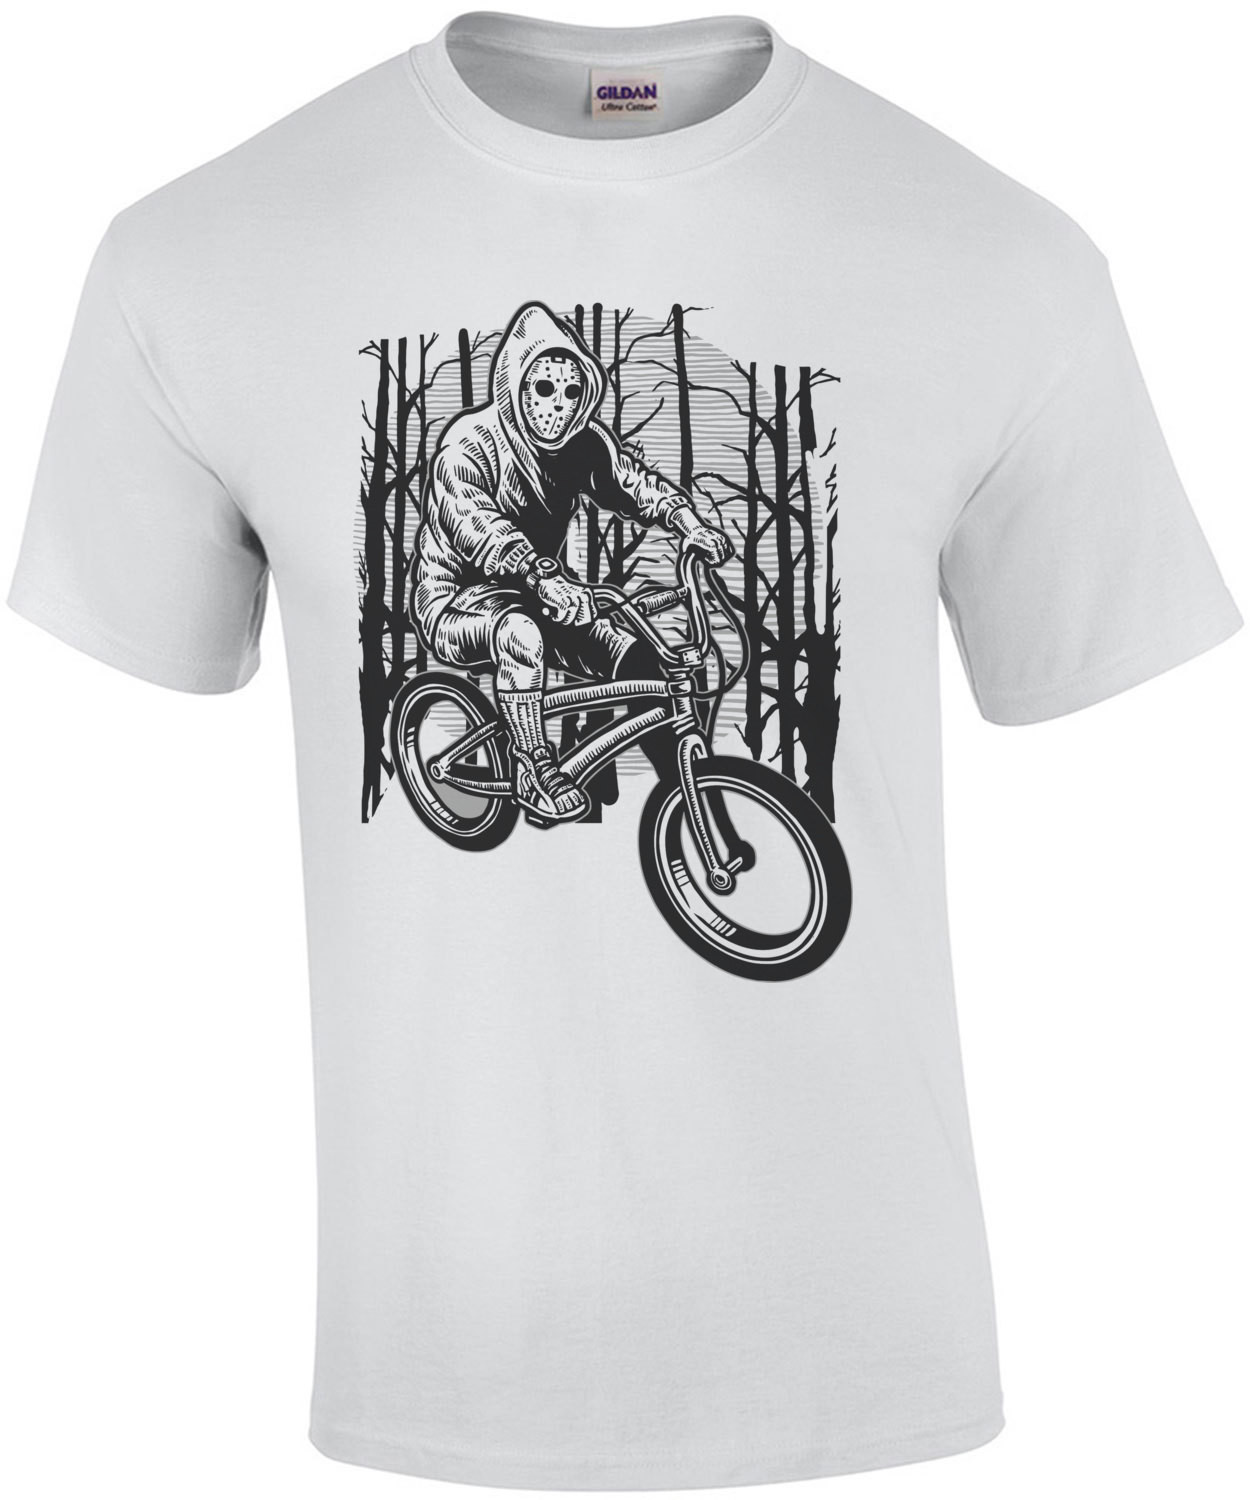 Jason Riding Bicycle Grungy T-Shirt